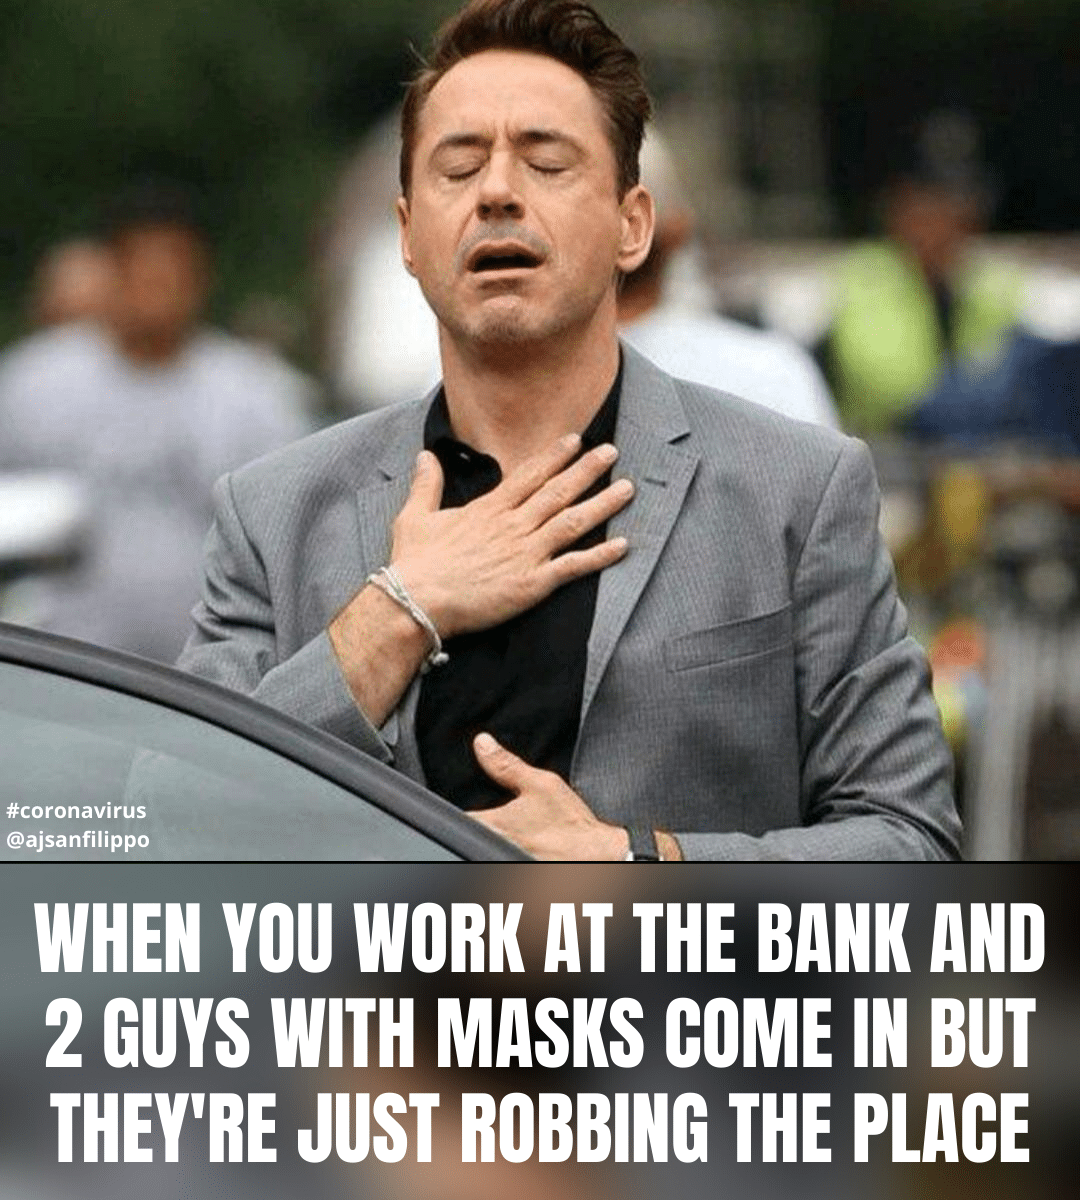 When you work at a bank and 2 guys with masks come in but they're just robbing the place!